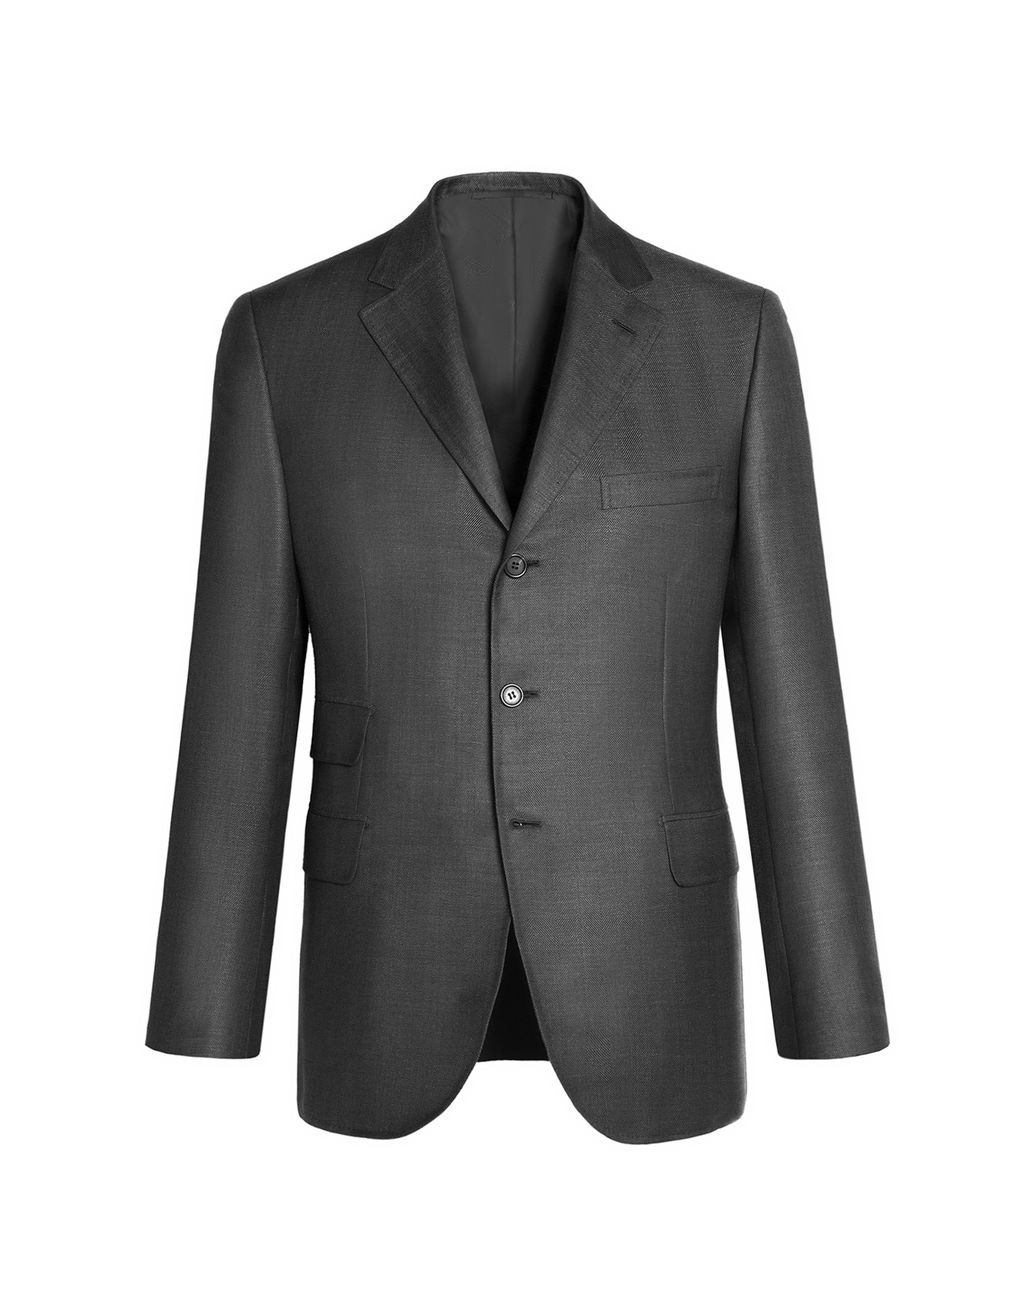 BRIONI Grey Herringbone Jacket Jackets U f